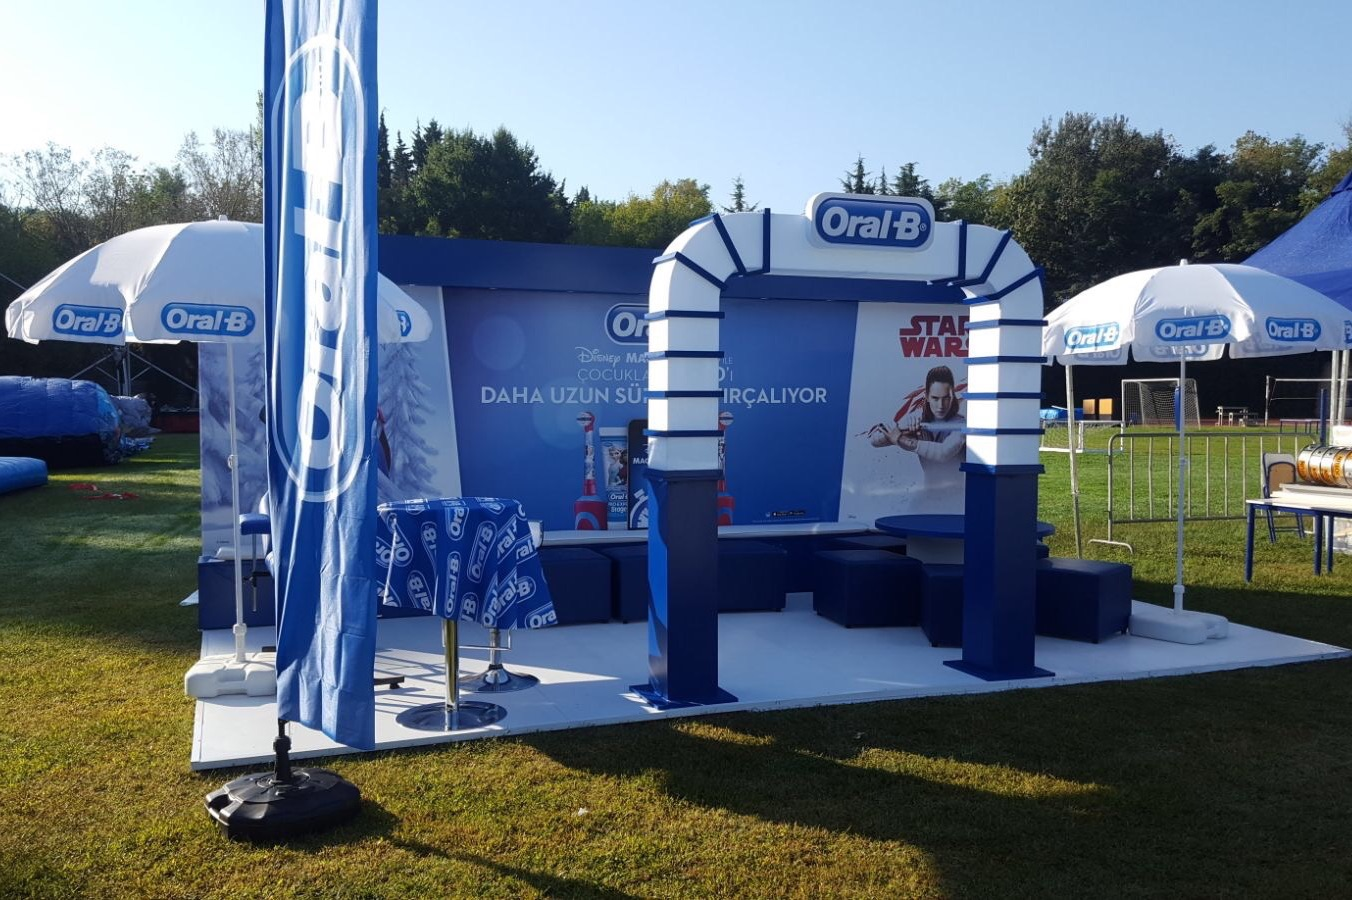 ORAL B STAND